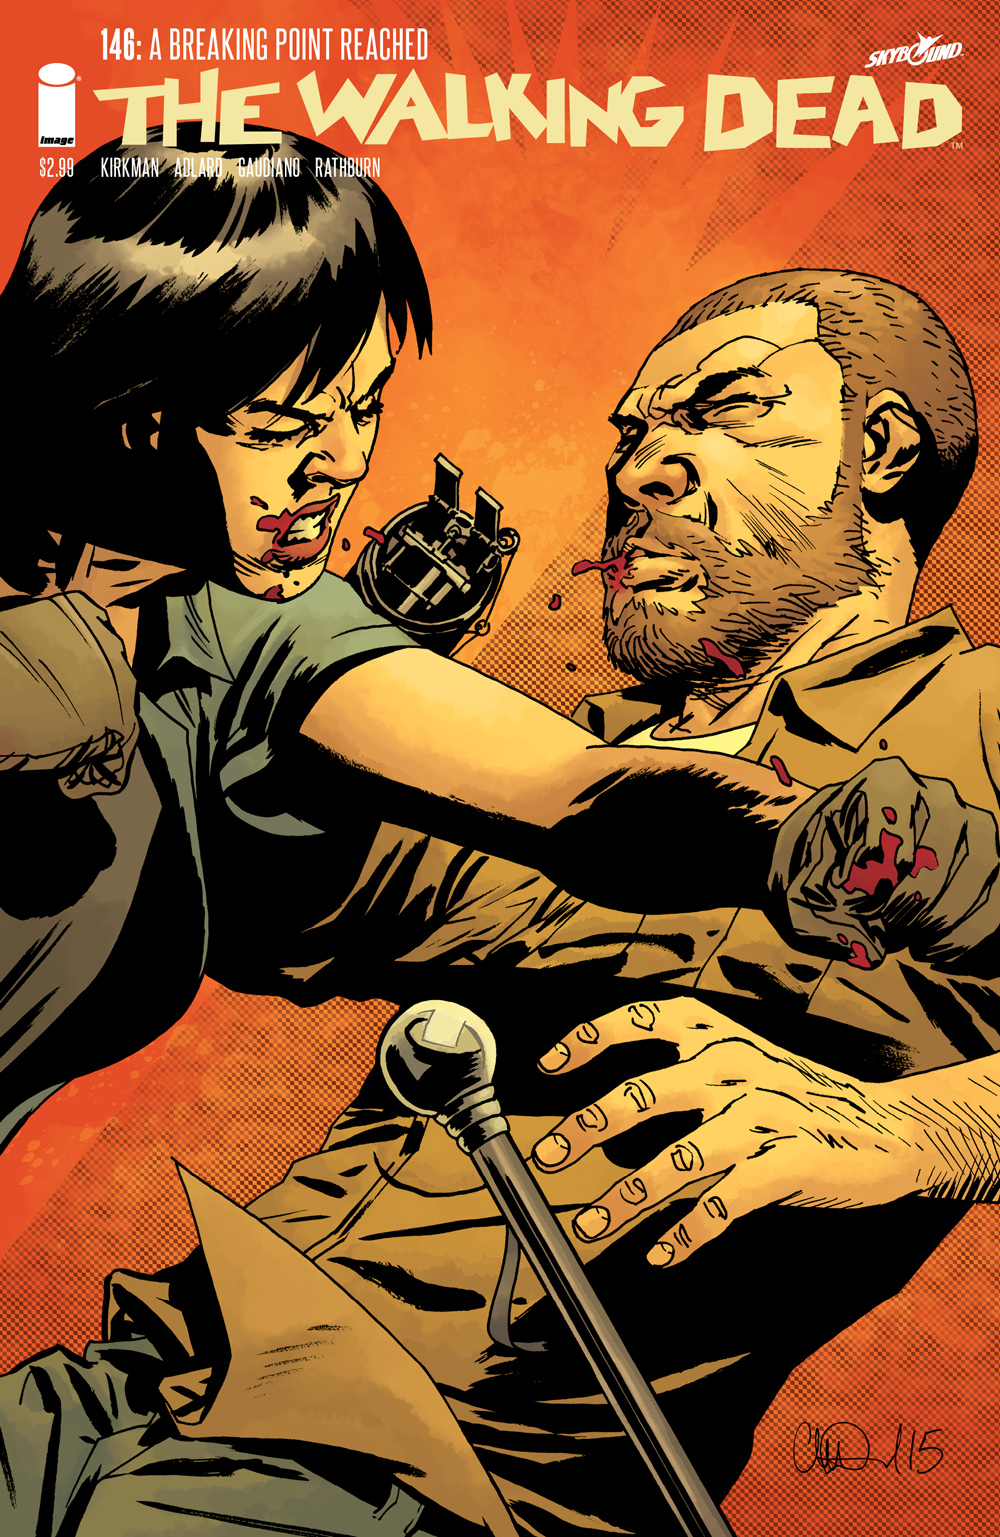 how many issues of the walking dead comics are there